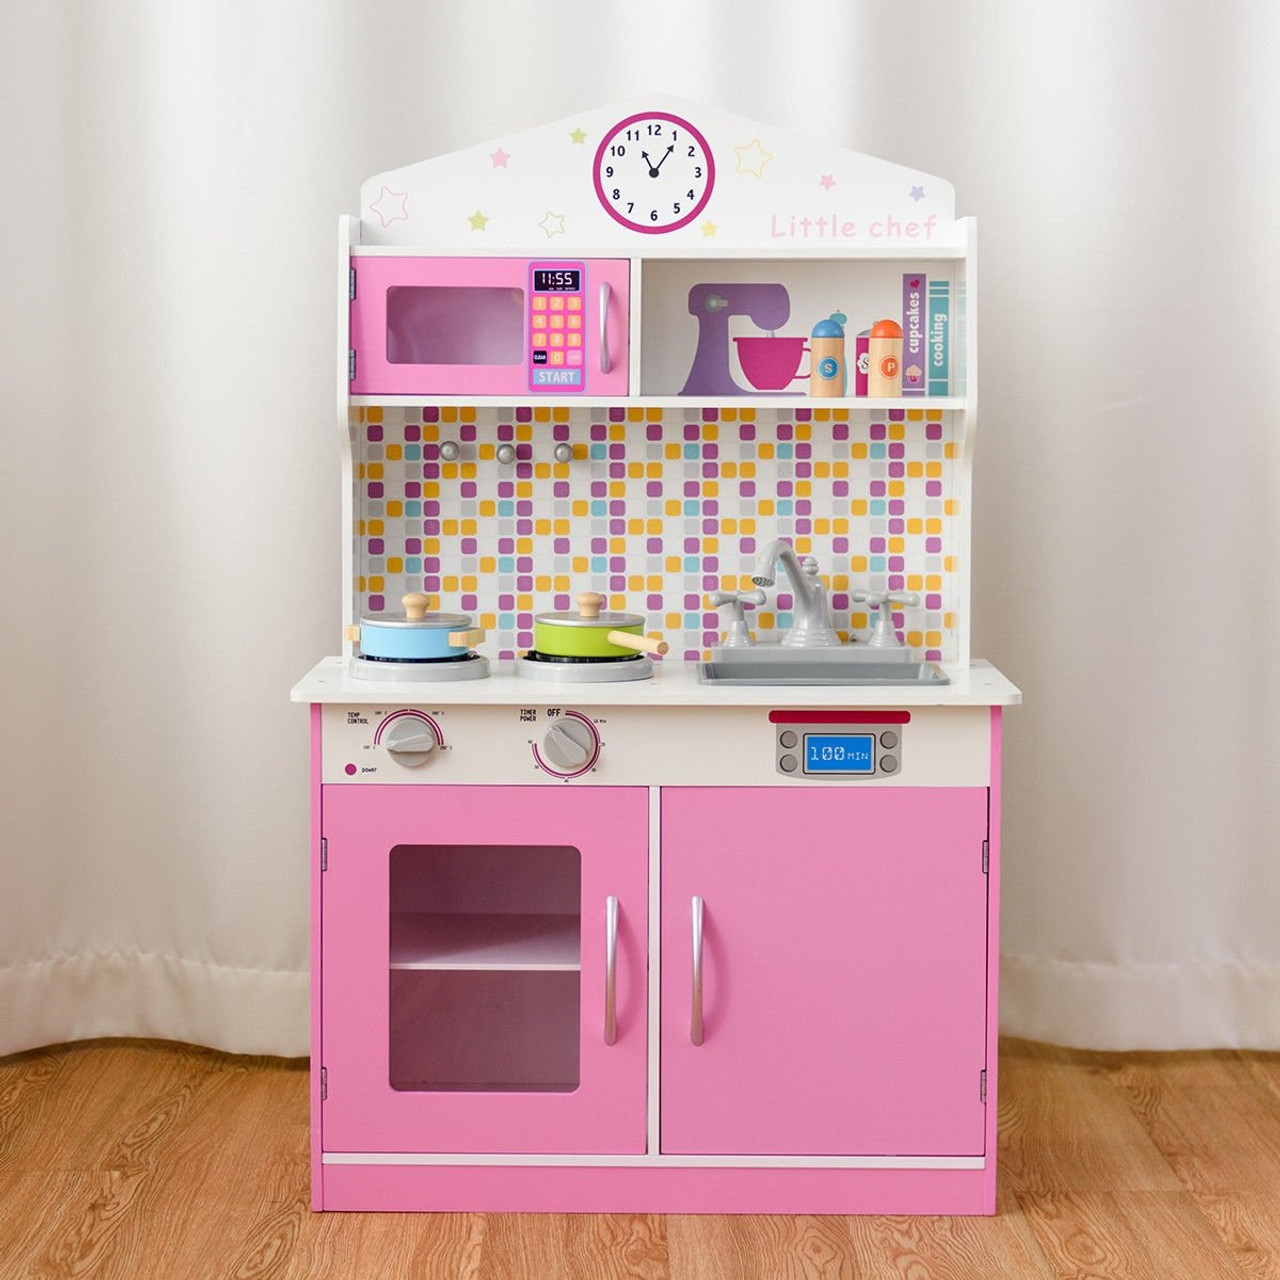 Kids Wooden Pretend Cooking Playset Cookware Play Set Kitchen Toys Toddler Gift Pink Hw58832 By Cw